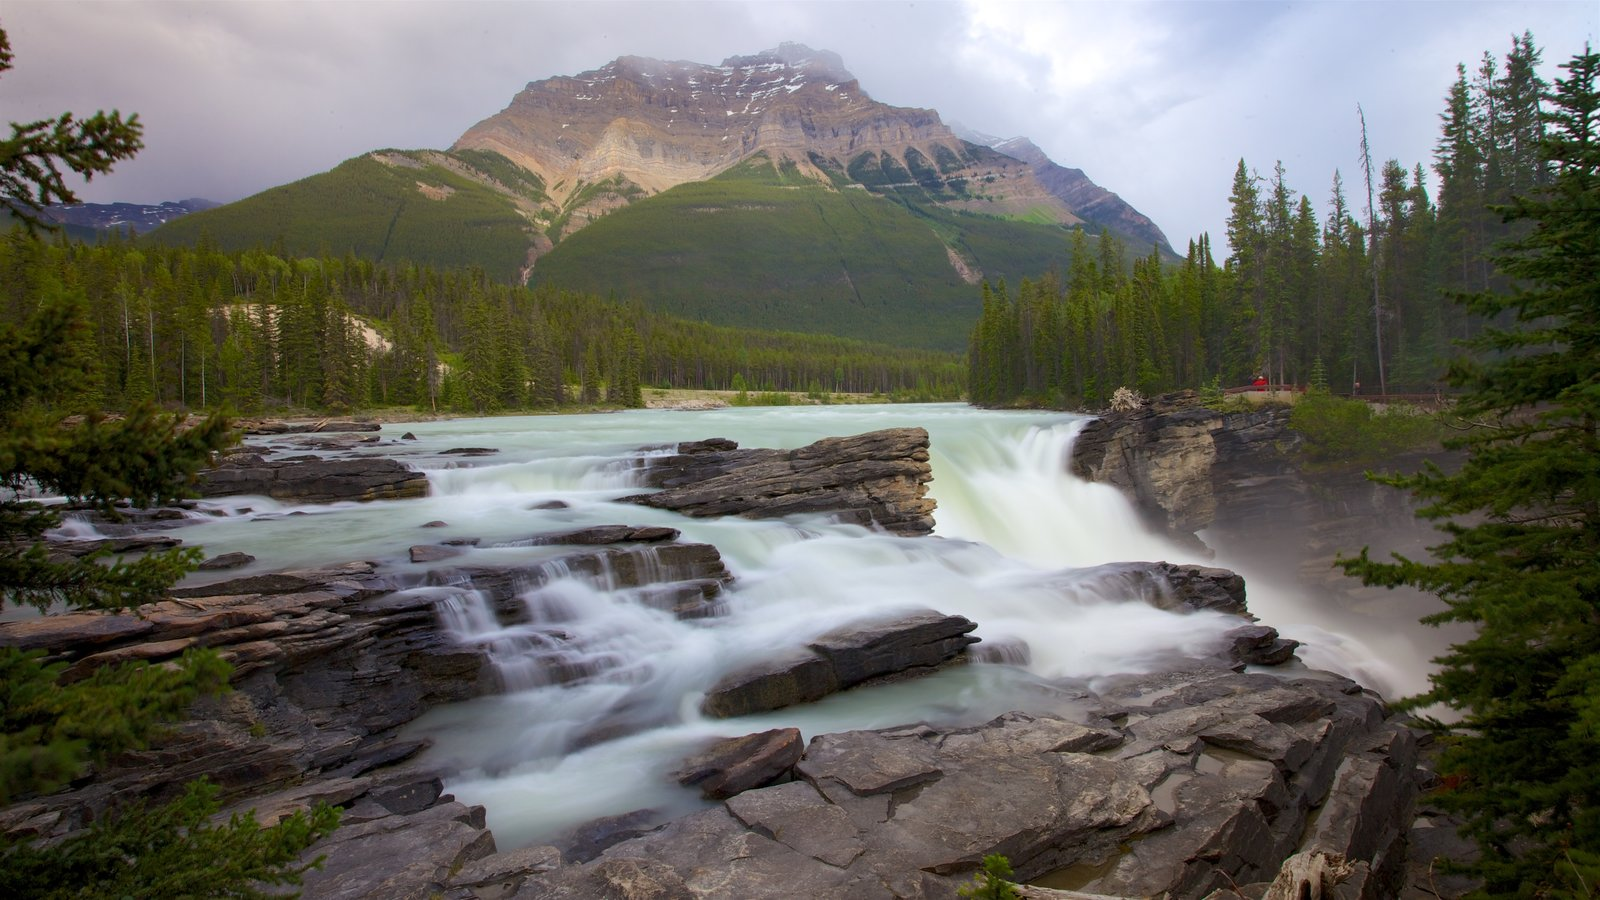 Athabasca Falls showing a cascade, landscape views and mountains